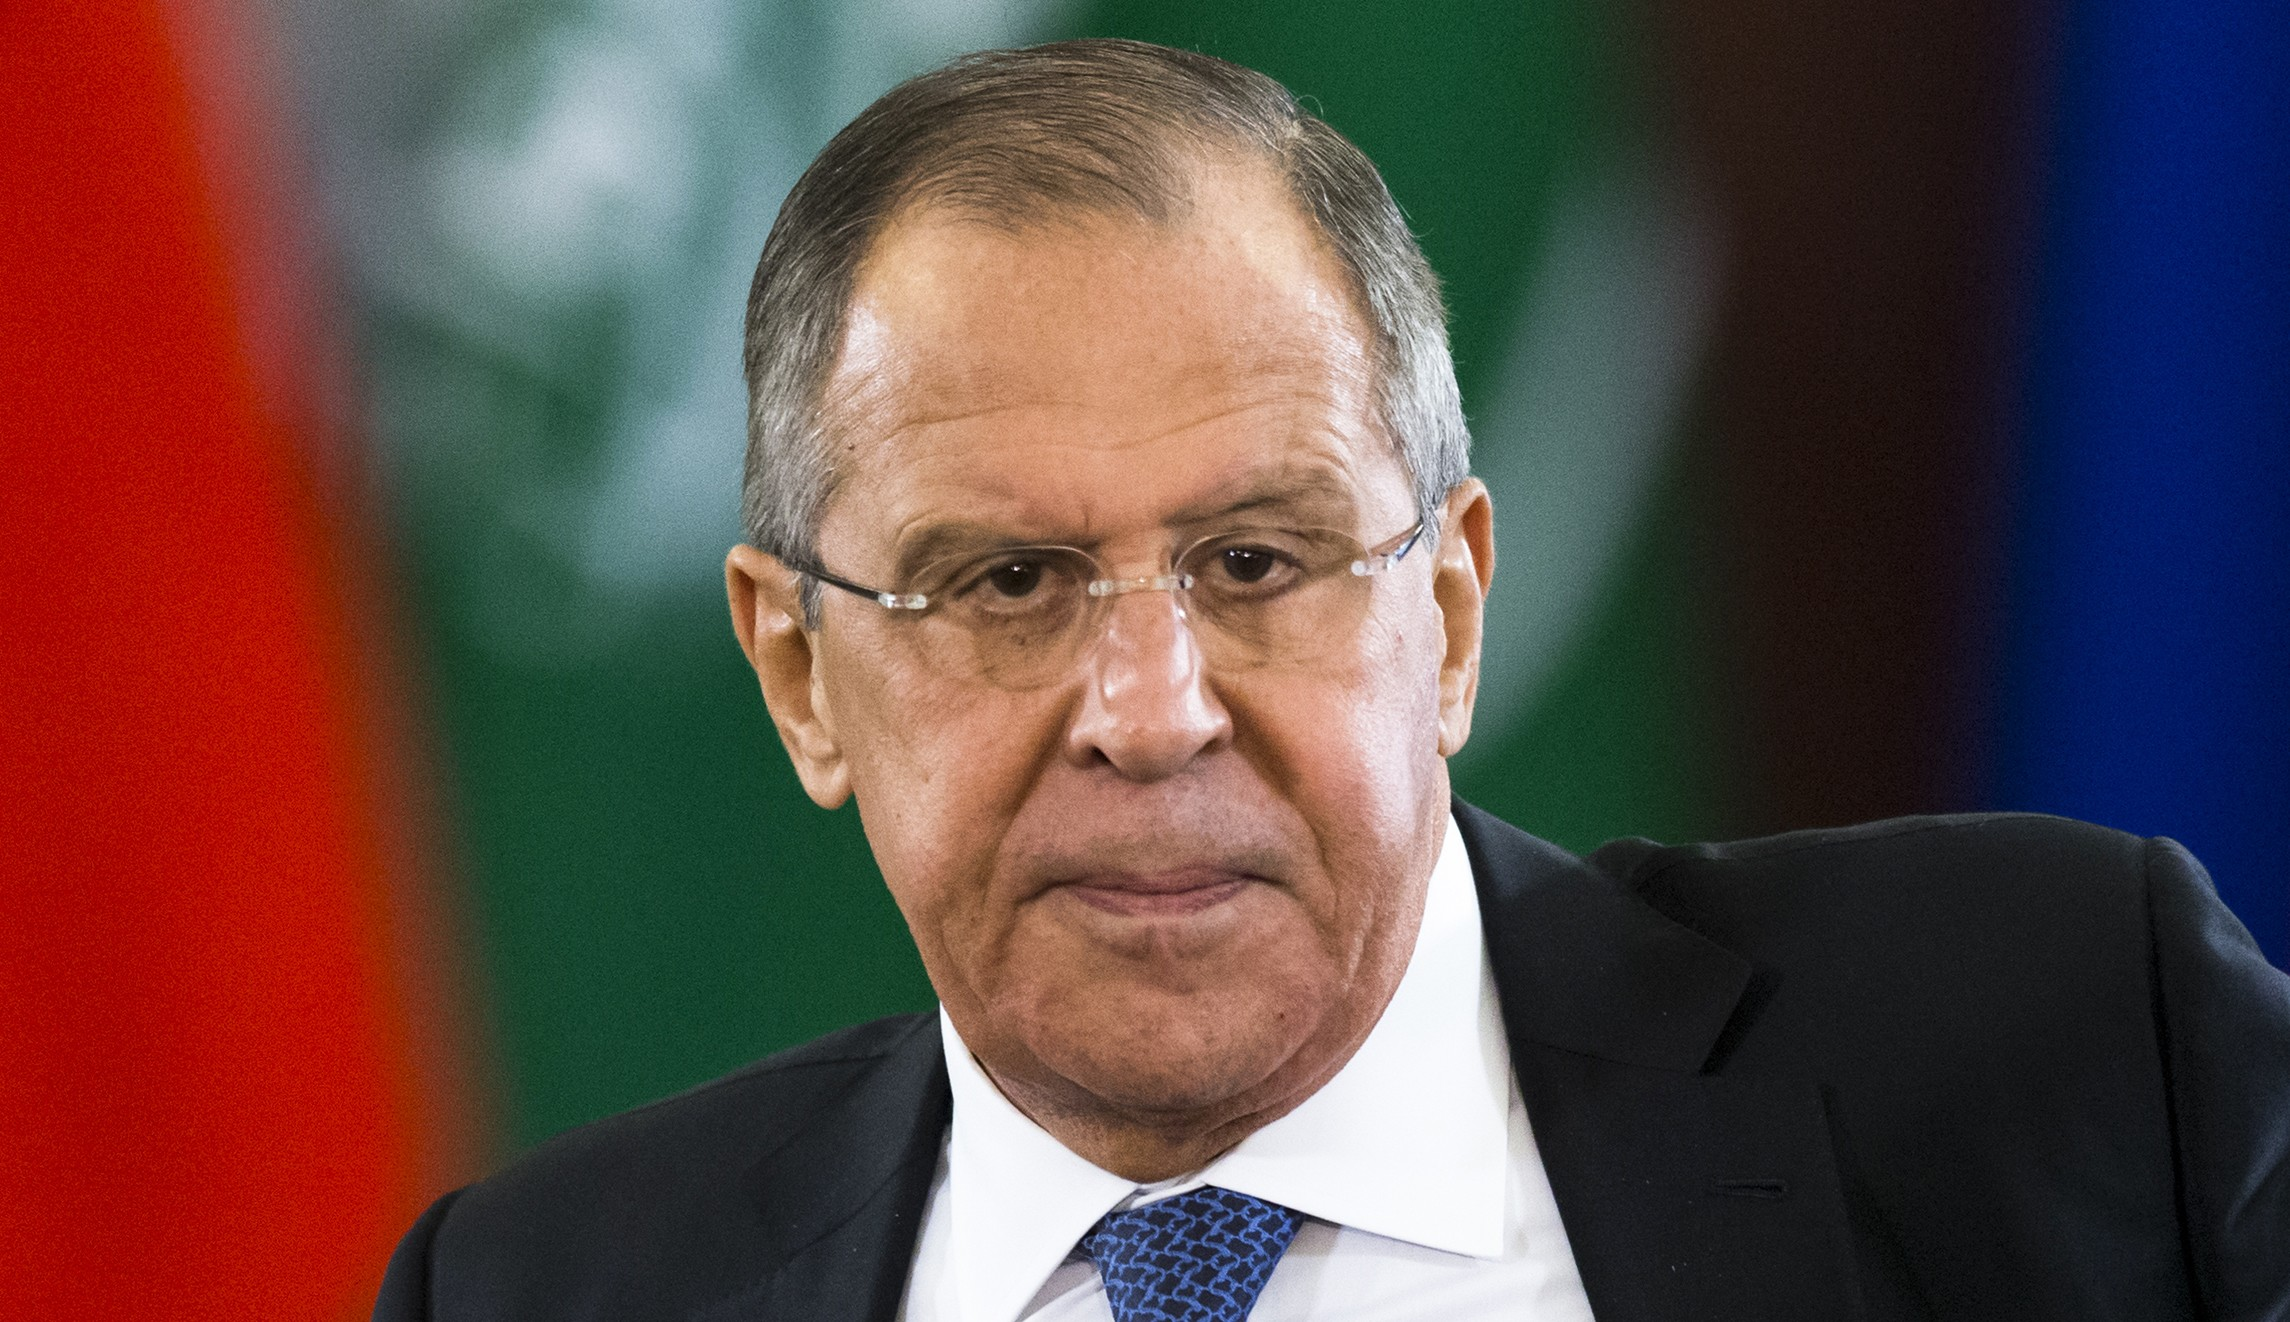 Russian Foreign Minister: Israeli Airstrikes On Syria Could Lead To Escalation